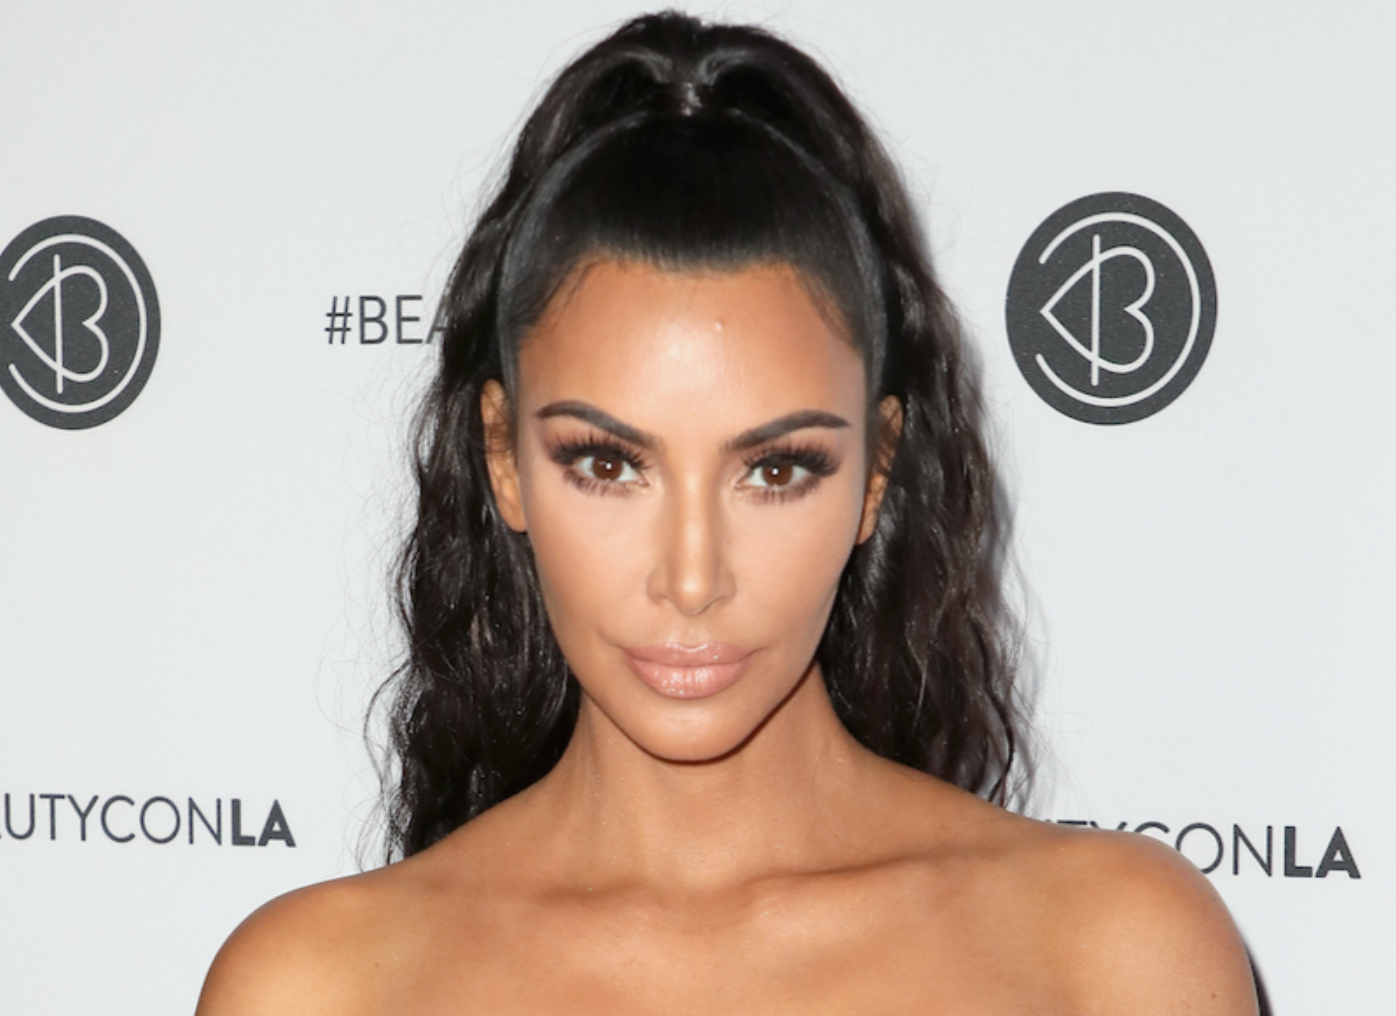 Kim Kardashian Stands By Harsh Critique of Kourtney Kardashian